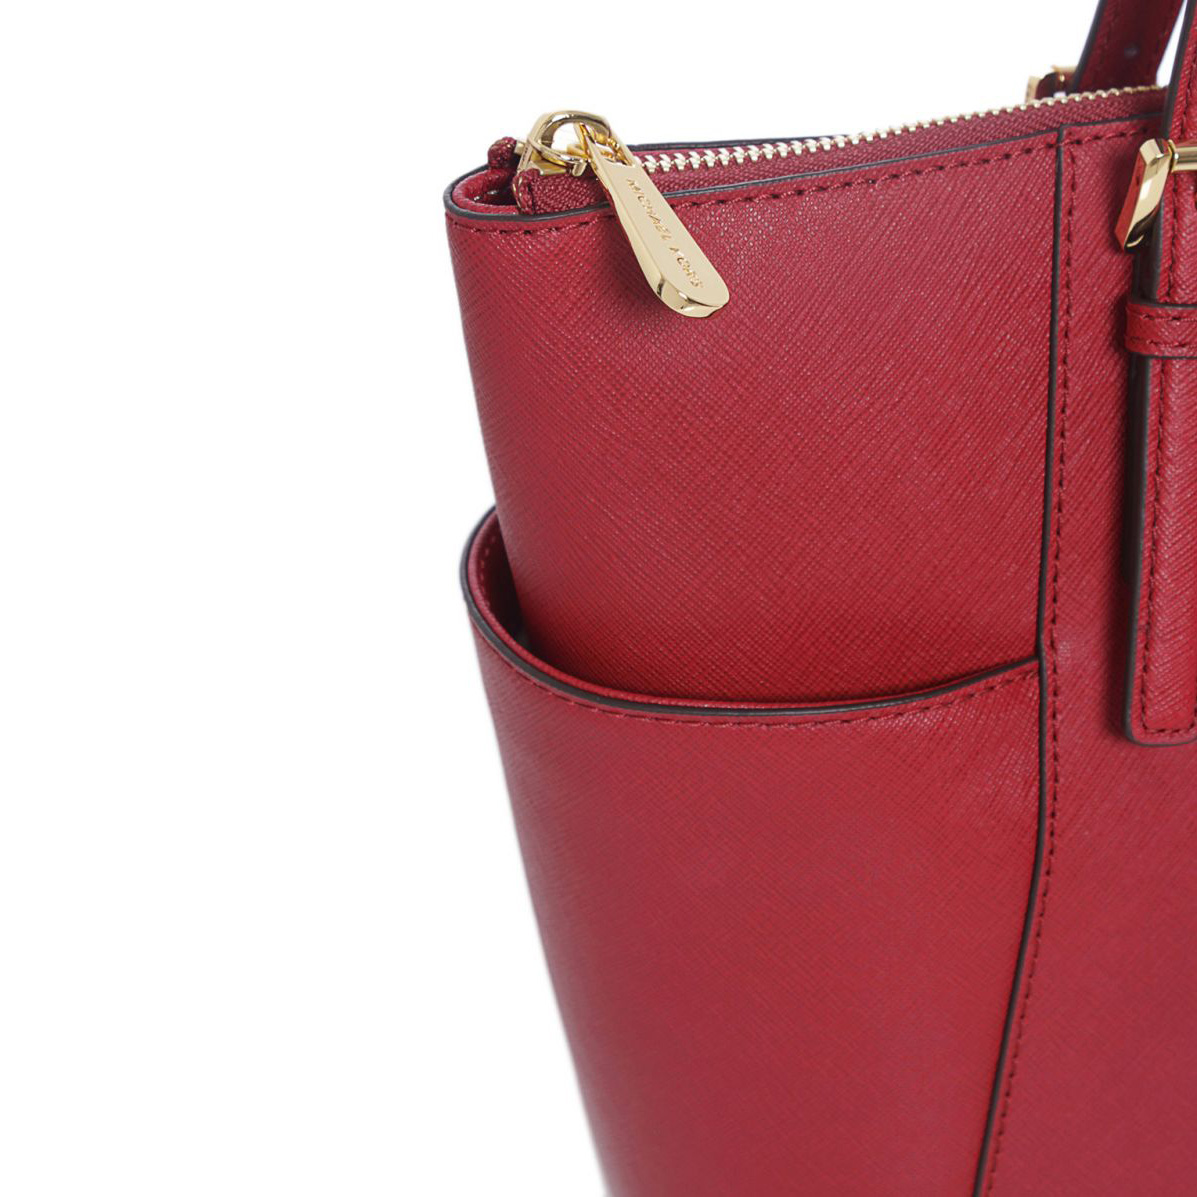 4212d40761ed SpreeSuki - Michael Kors East West Top Zip Leather Tote Cherry Red ...